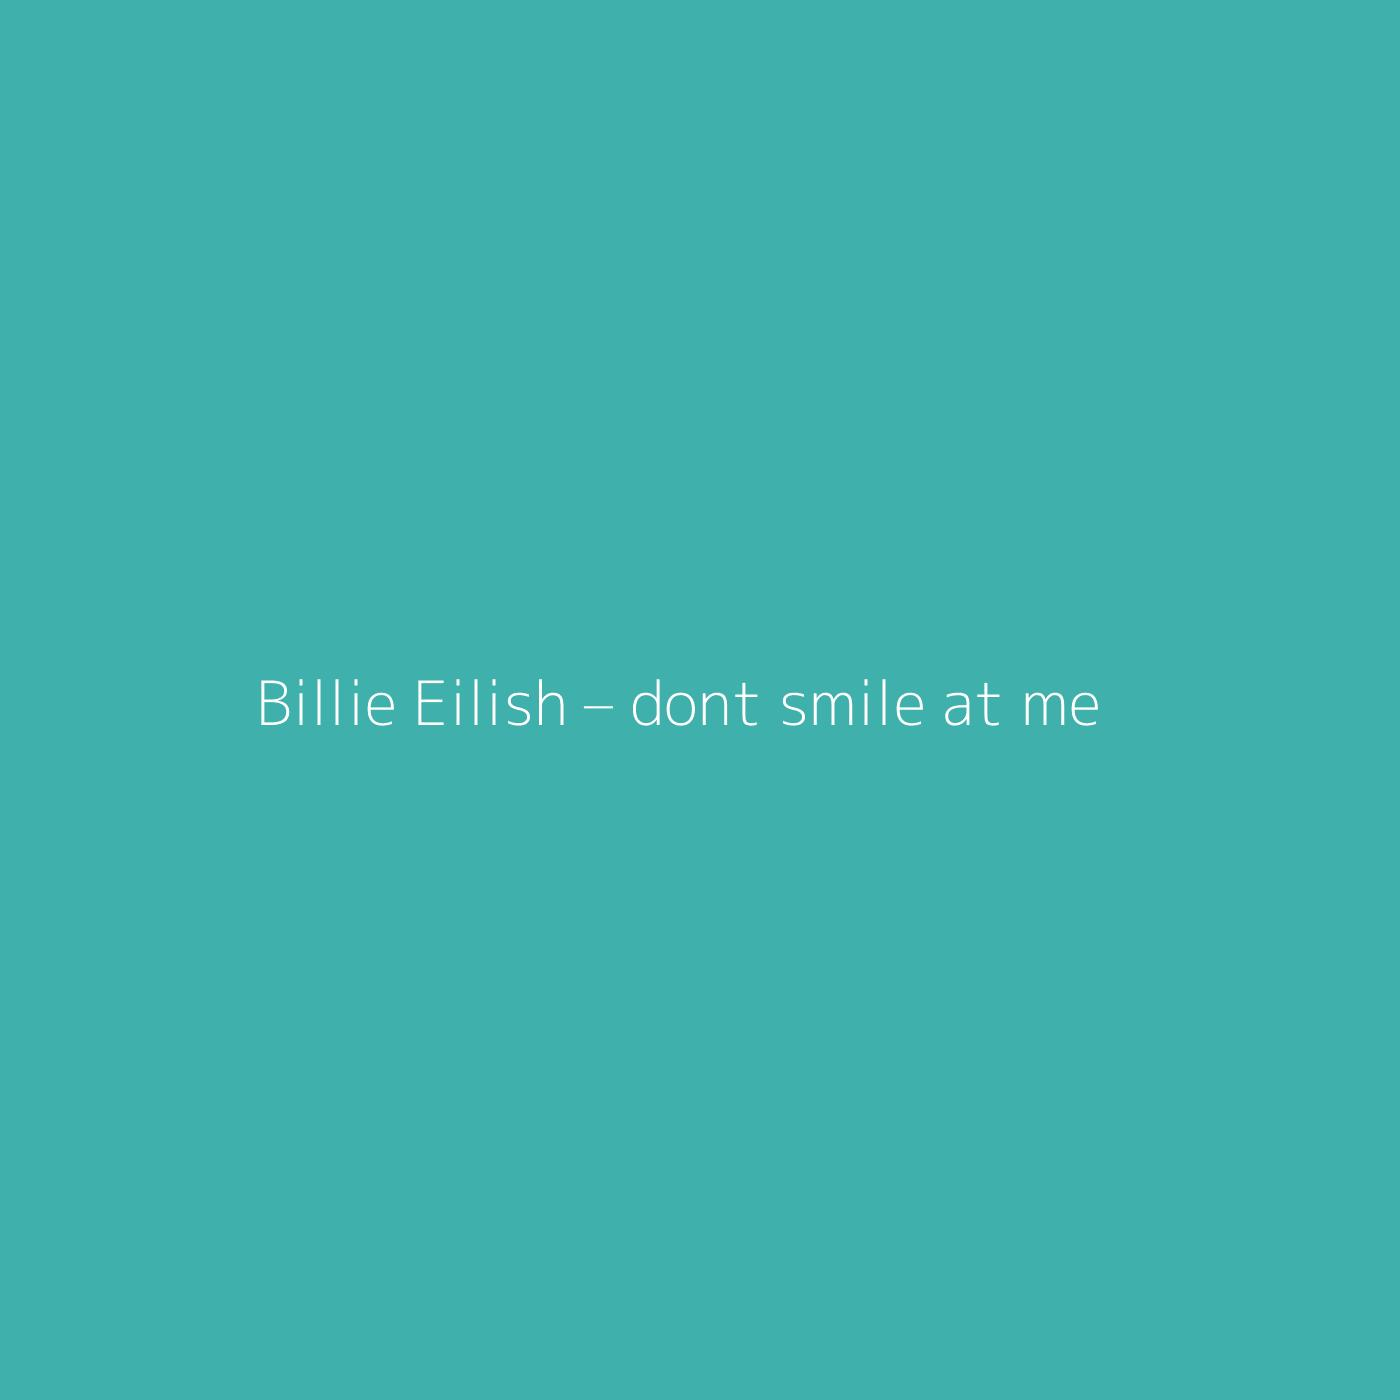 Billie Eilish – dont smile at me